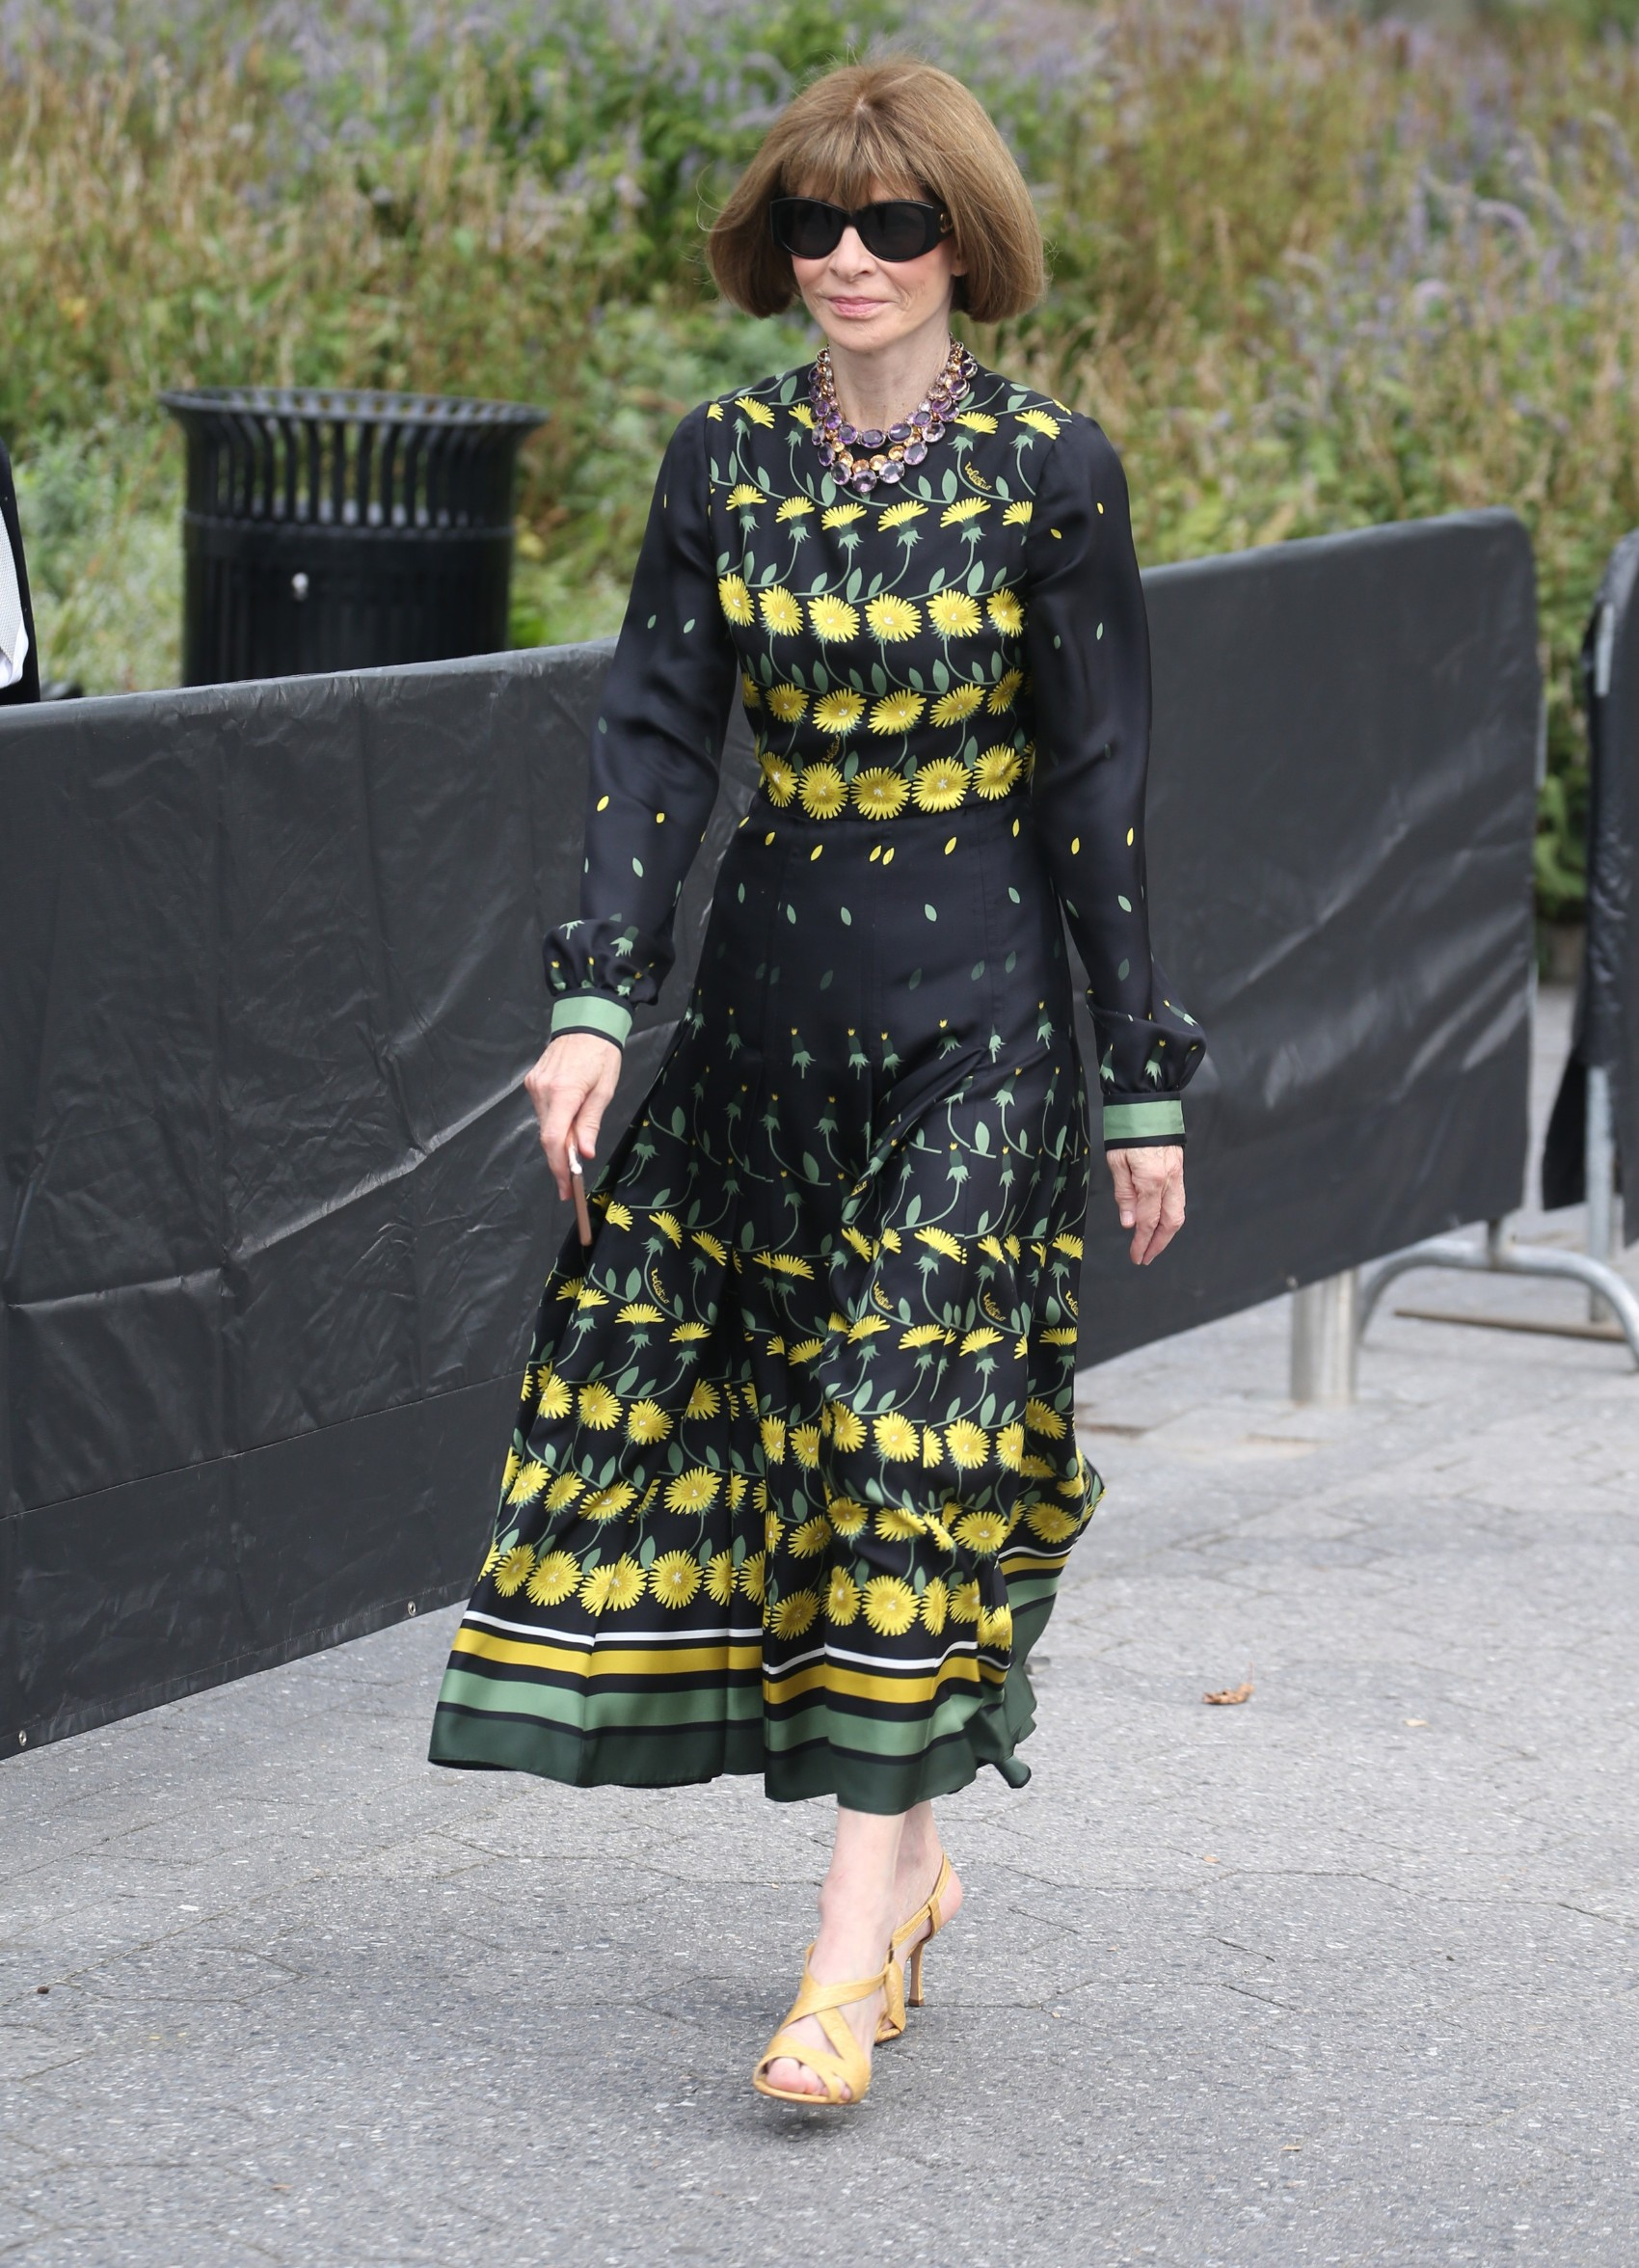 , New York, NY - 20190909 - Celebrities at Carolina Herrera During New York Fashion Week 2019  -PICTURED: Anna Wintour -, Image: 469995769, License: Rights-managed, Restrictions: , Model Release: no, Credit line: Profimedia, INSTAR Images